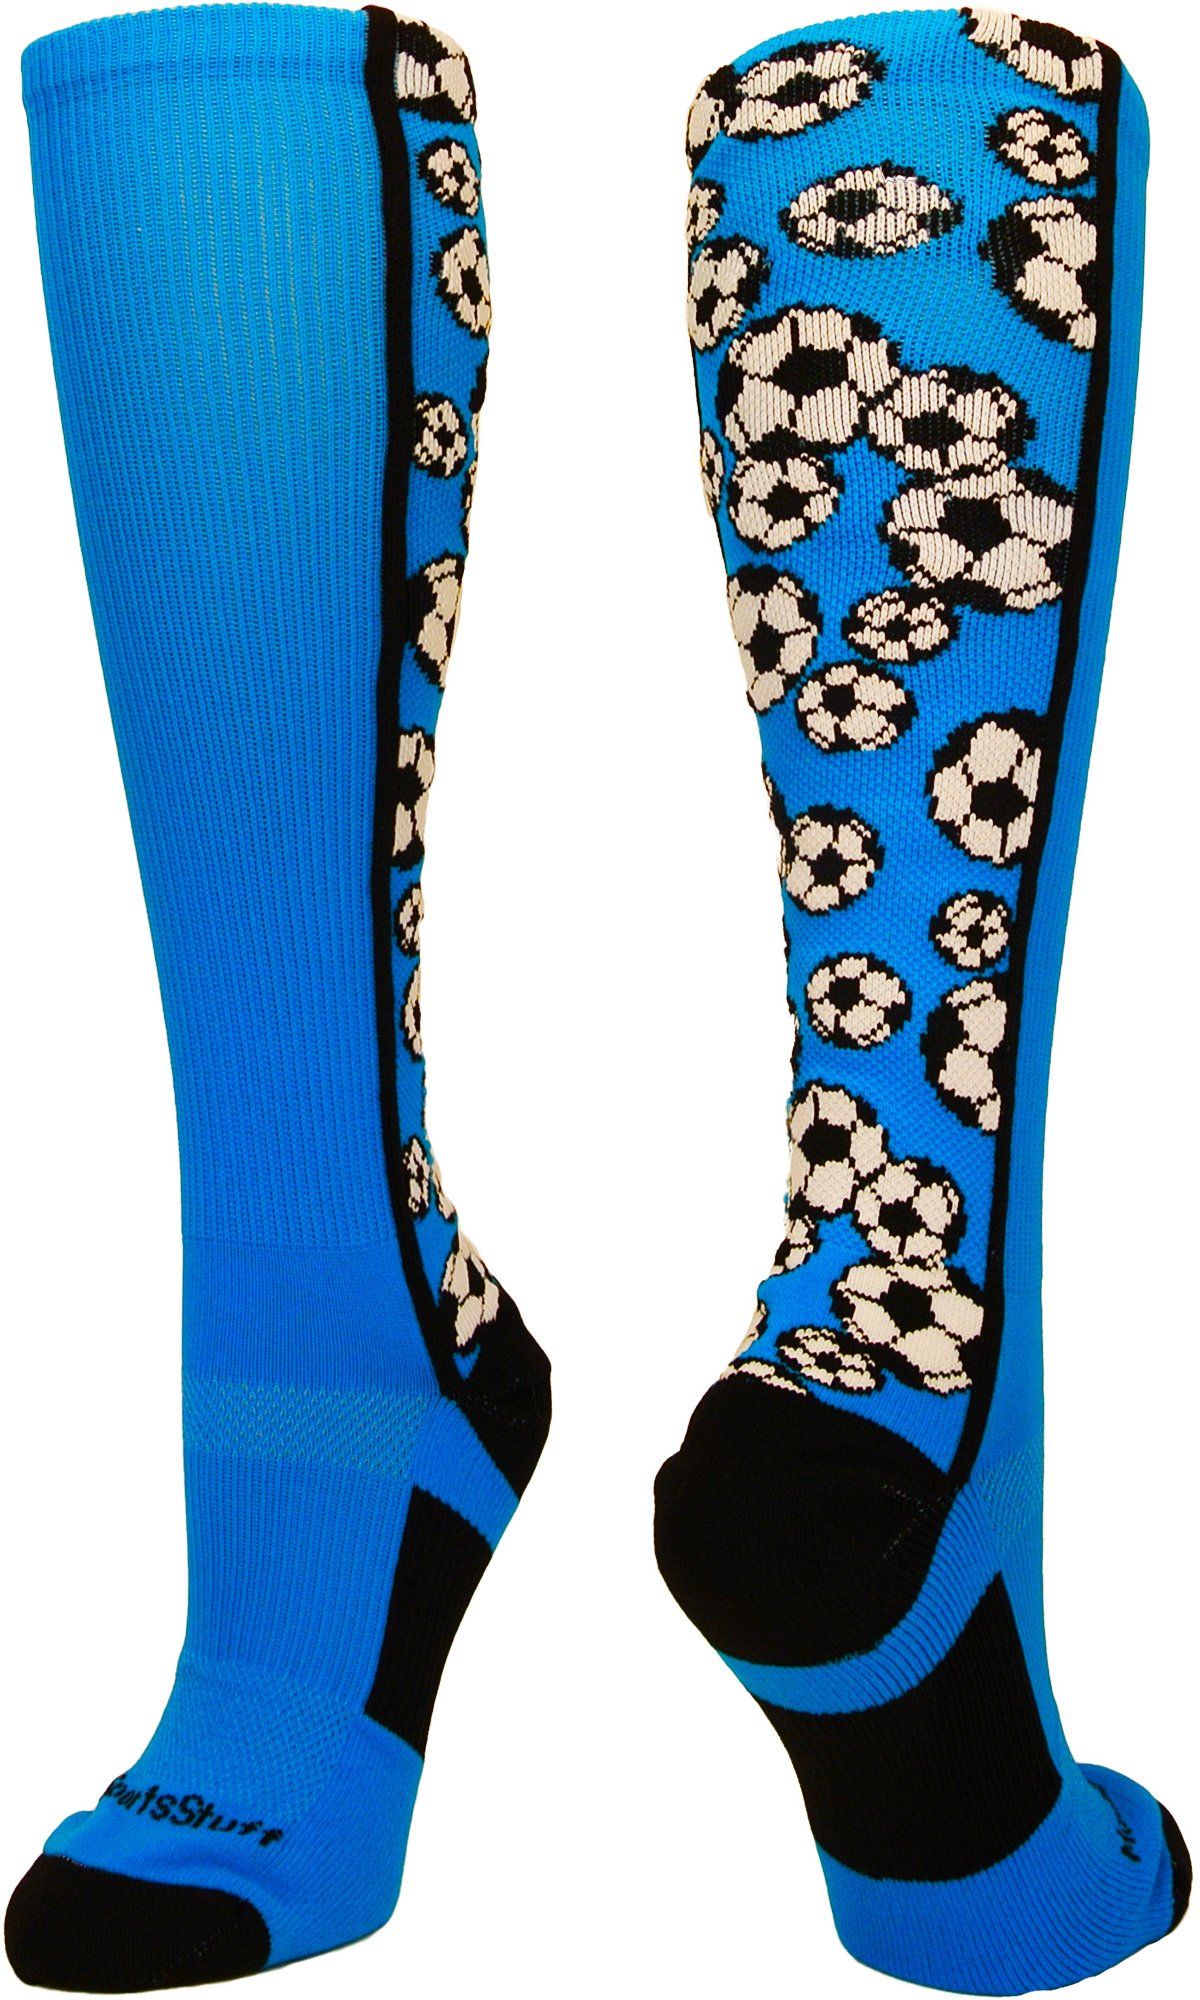 MadSportsStuff Crazy Soccer Socks with Soccer Balls Over The Calf (Electric Blue/Black, Medium) by MadSportsStuff